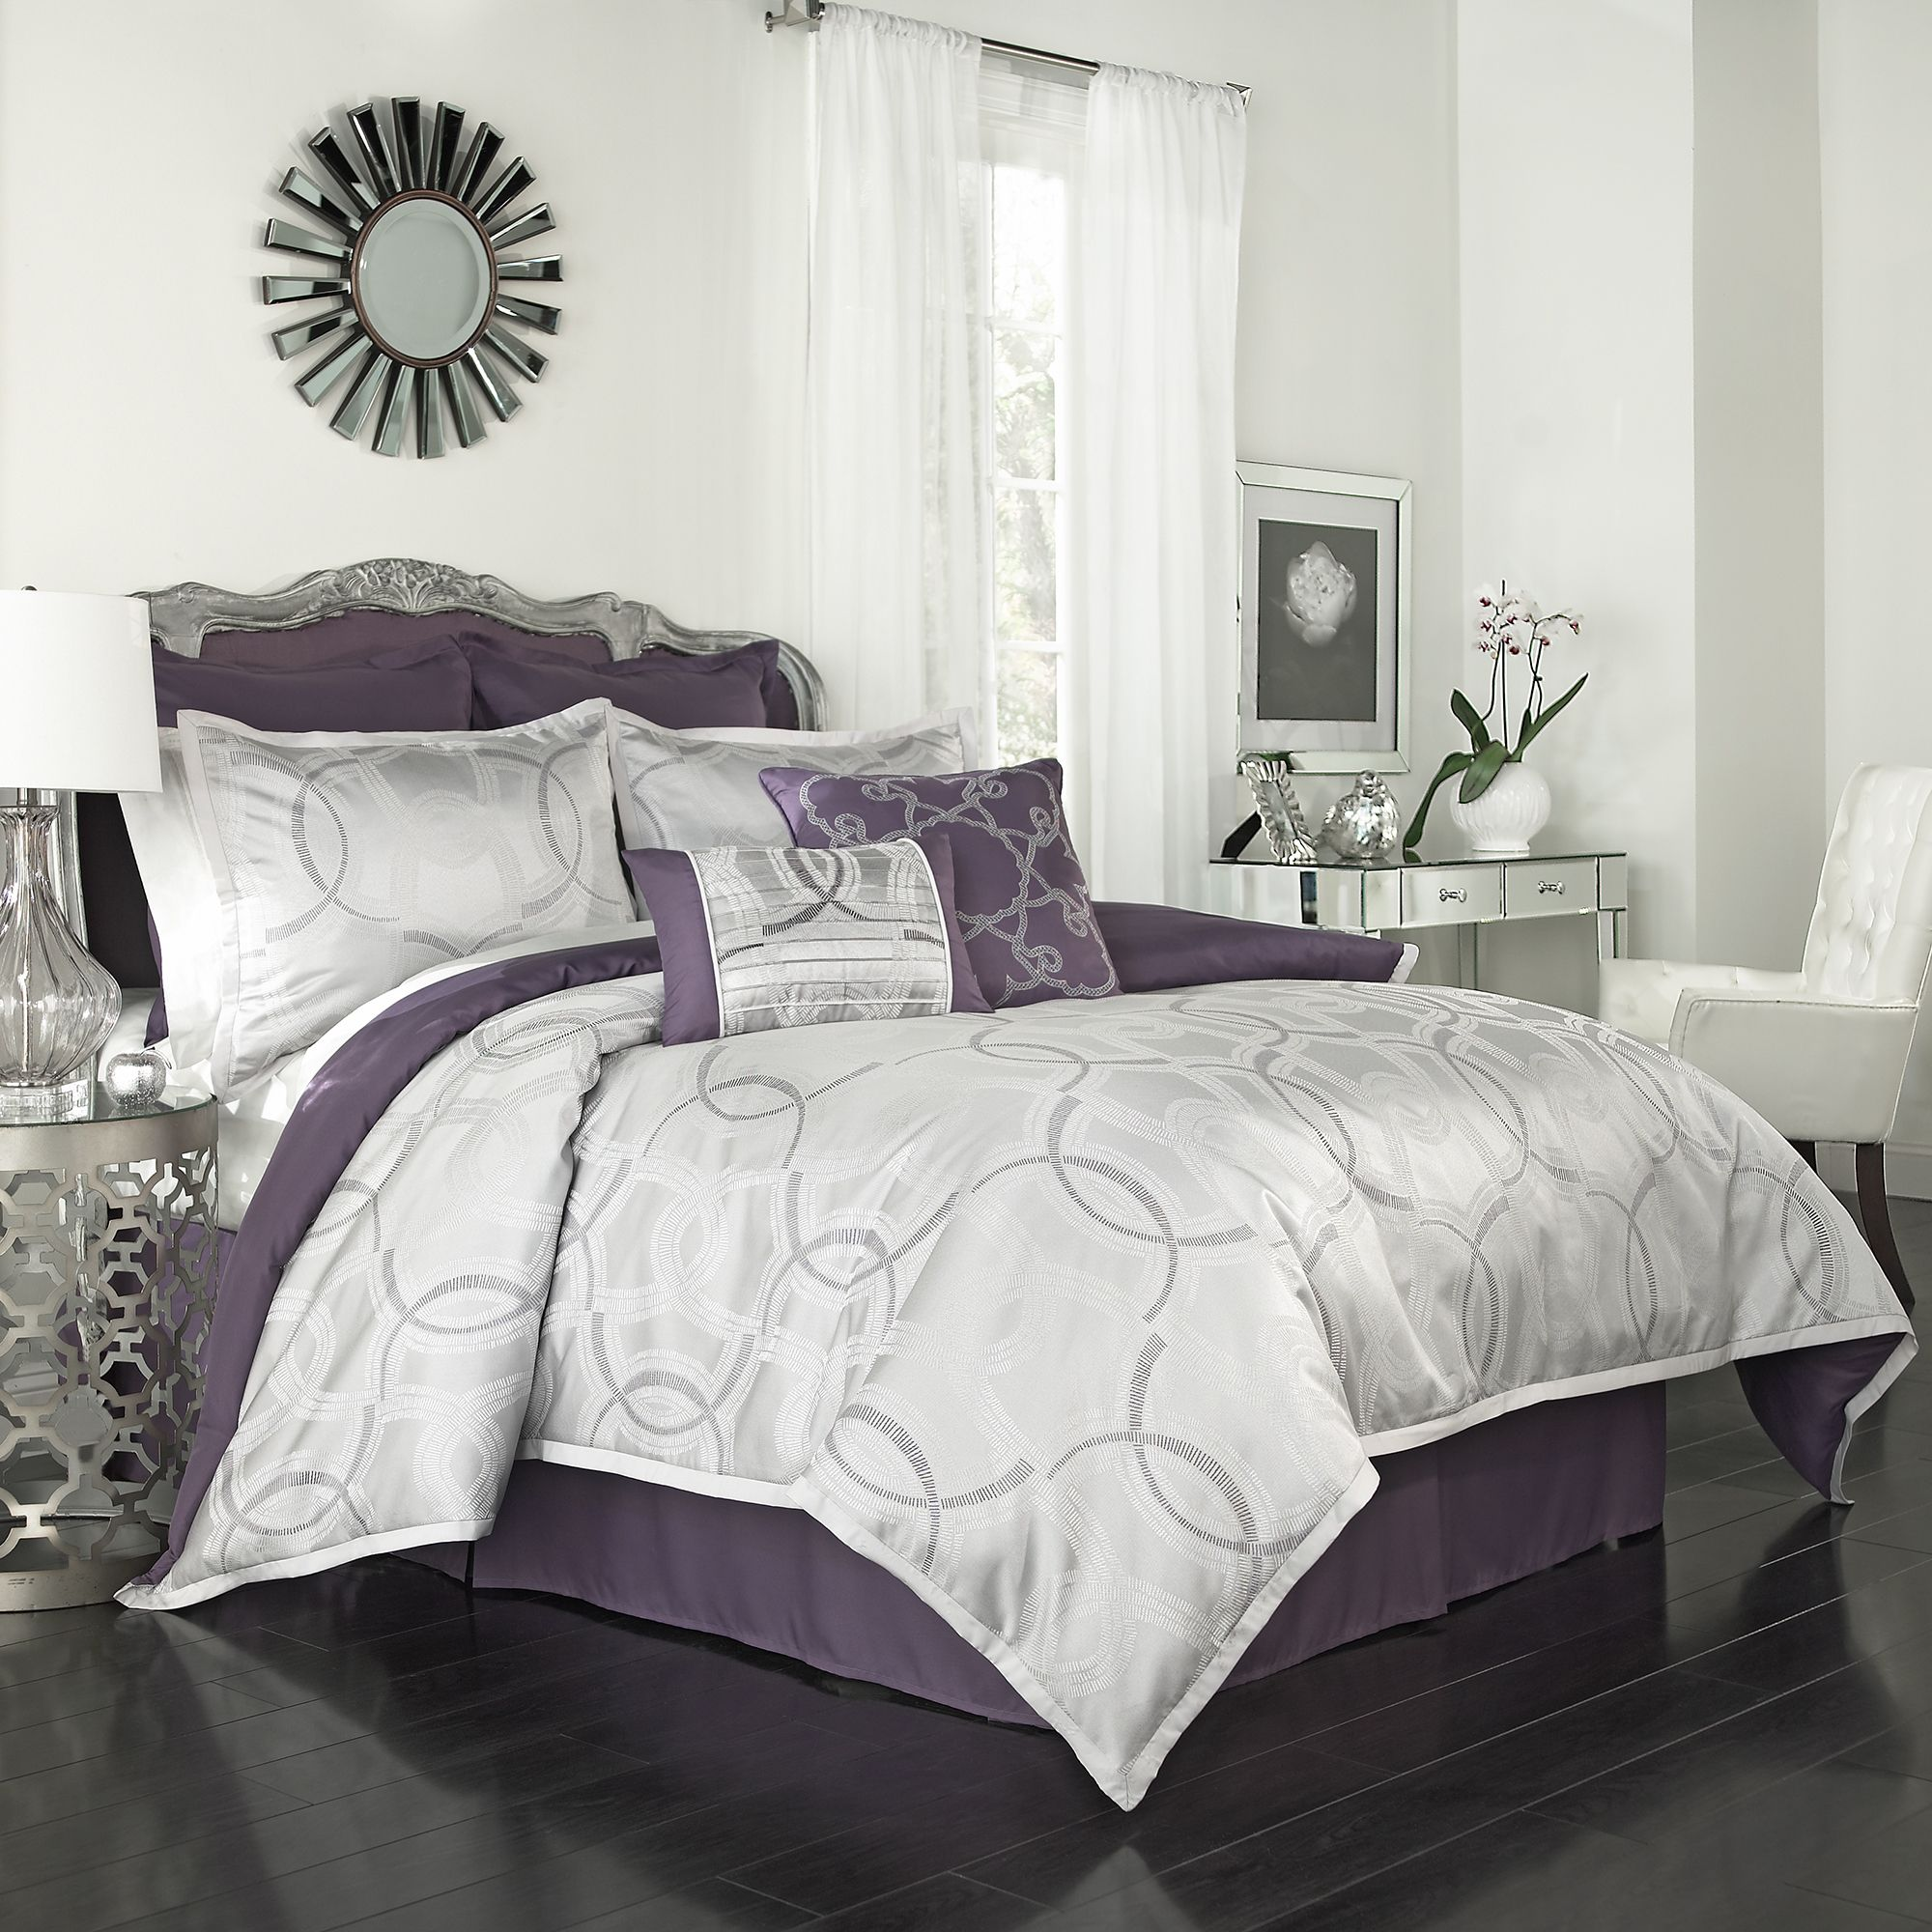 gray bedding awesome comforter nightstand bedroom idea light linen with white for your design bath marvelous headboard bed plus grey sets